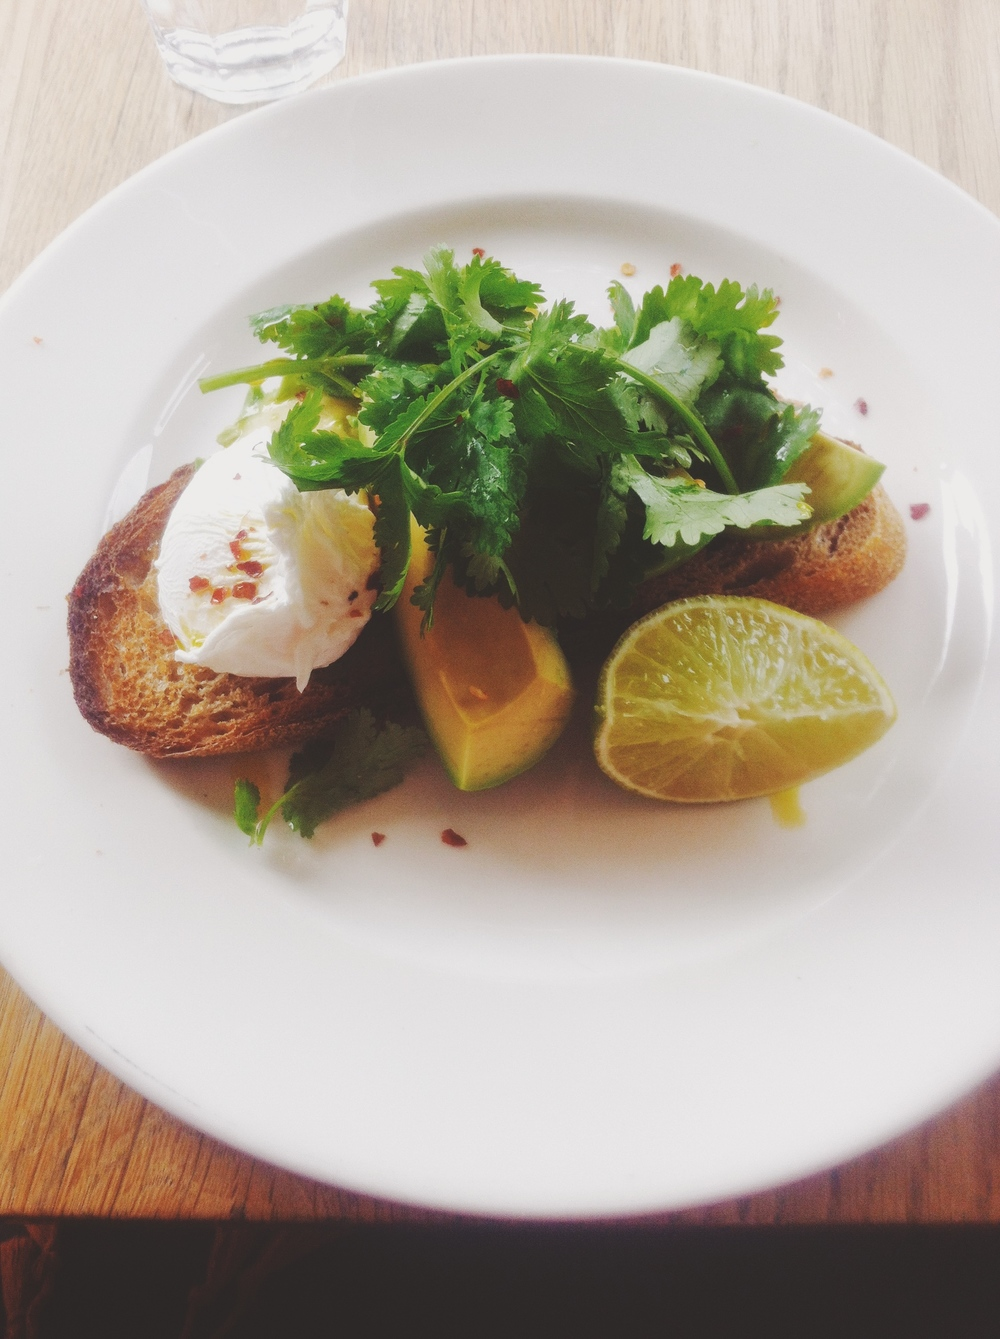 A fresh and light breakfast - poached egg with avacado and corriander